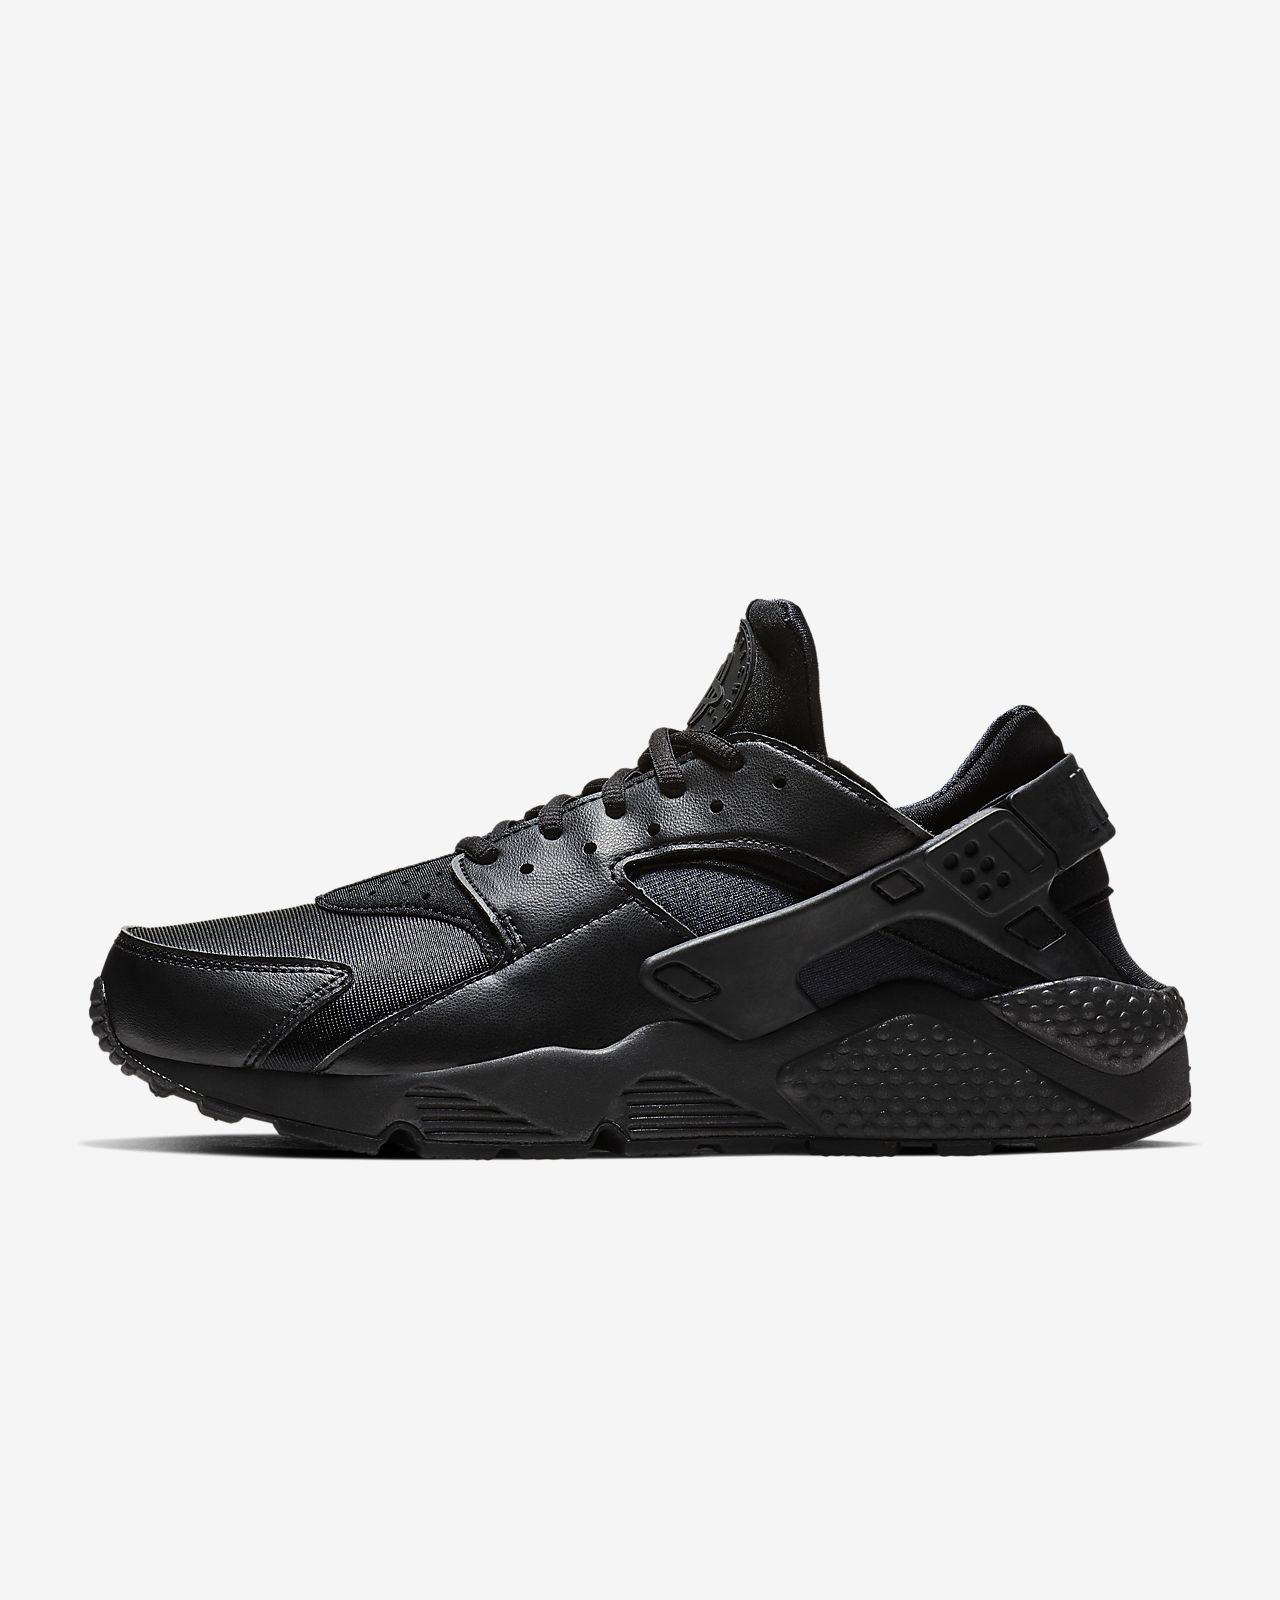 new product 3f19f 0ab46 Low Resolution Nike Air Huarache Women s Shoe Nike Air Huarache Women s Shoe